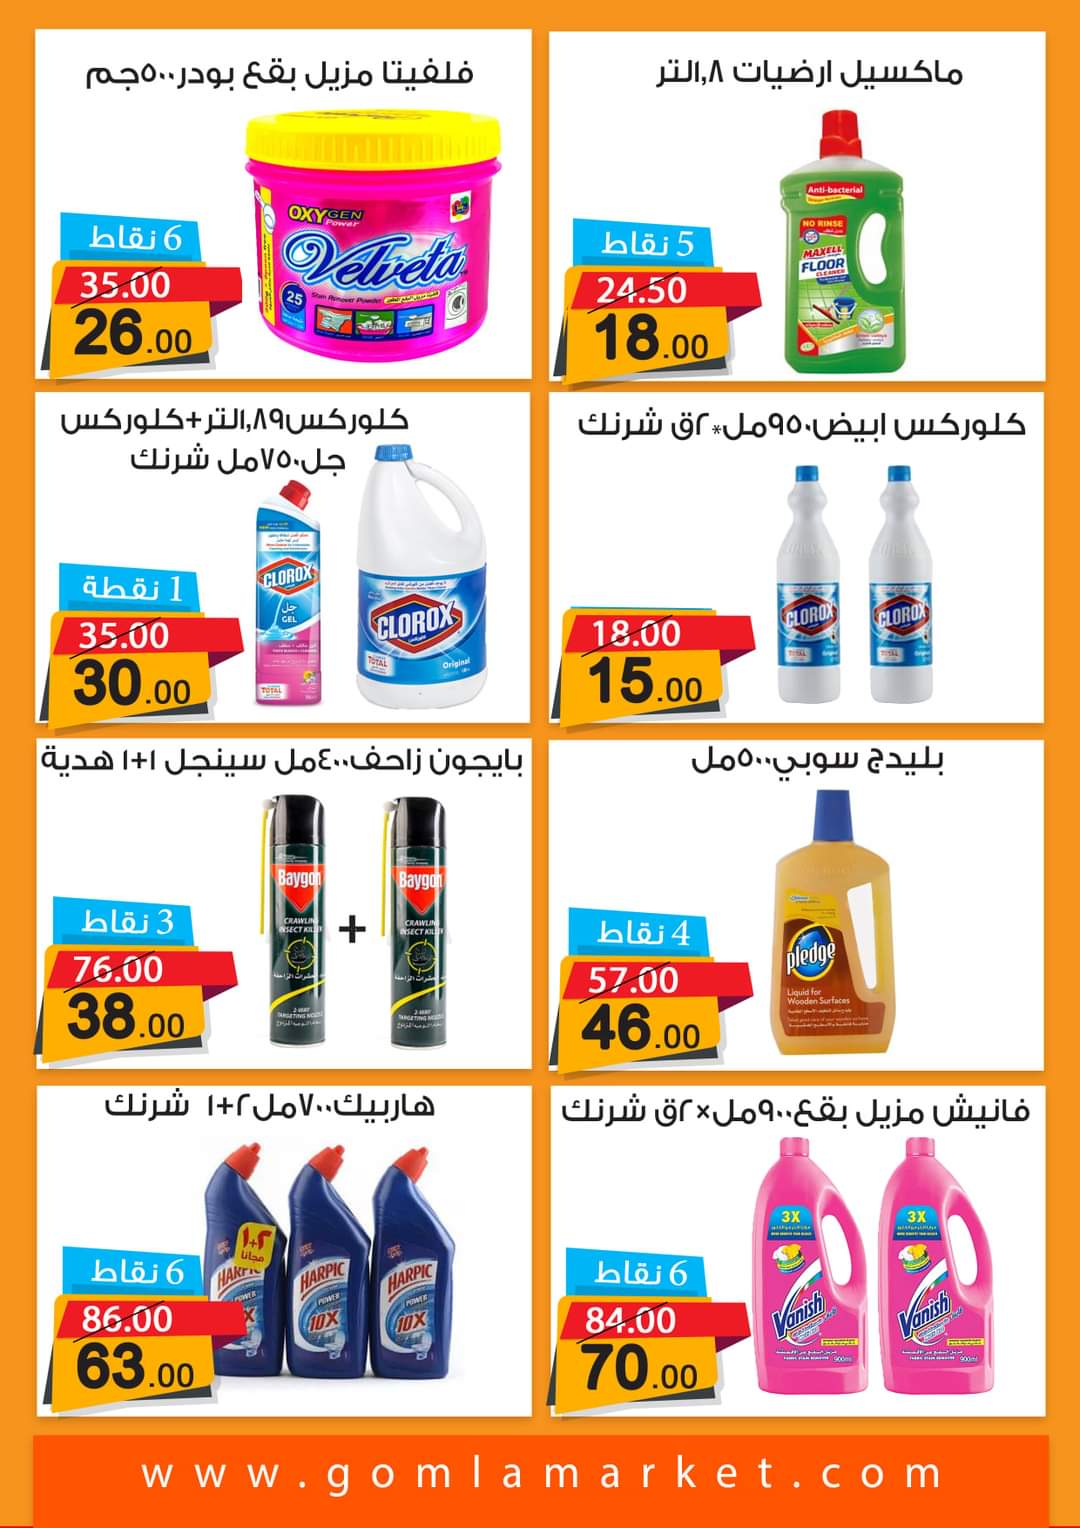 Wholesale Market discounts on the detergents section